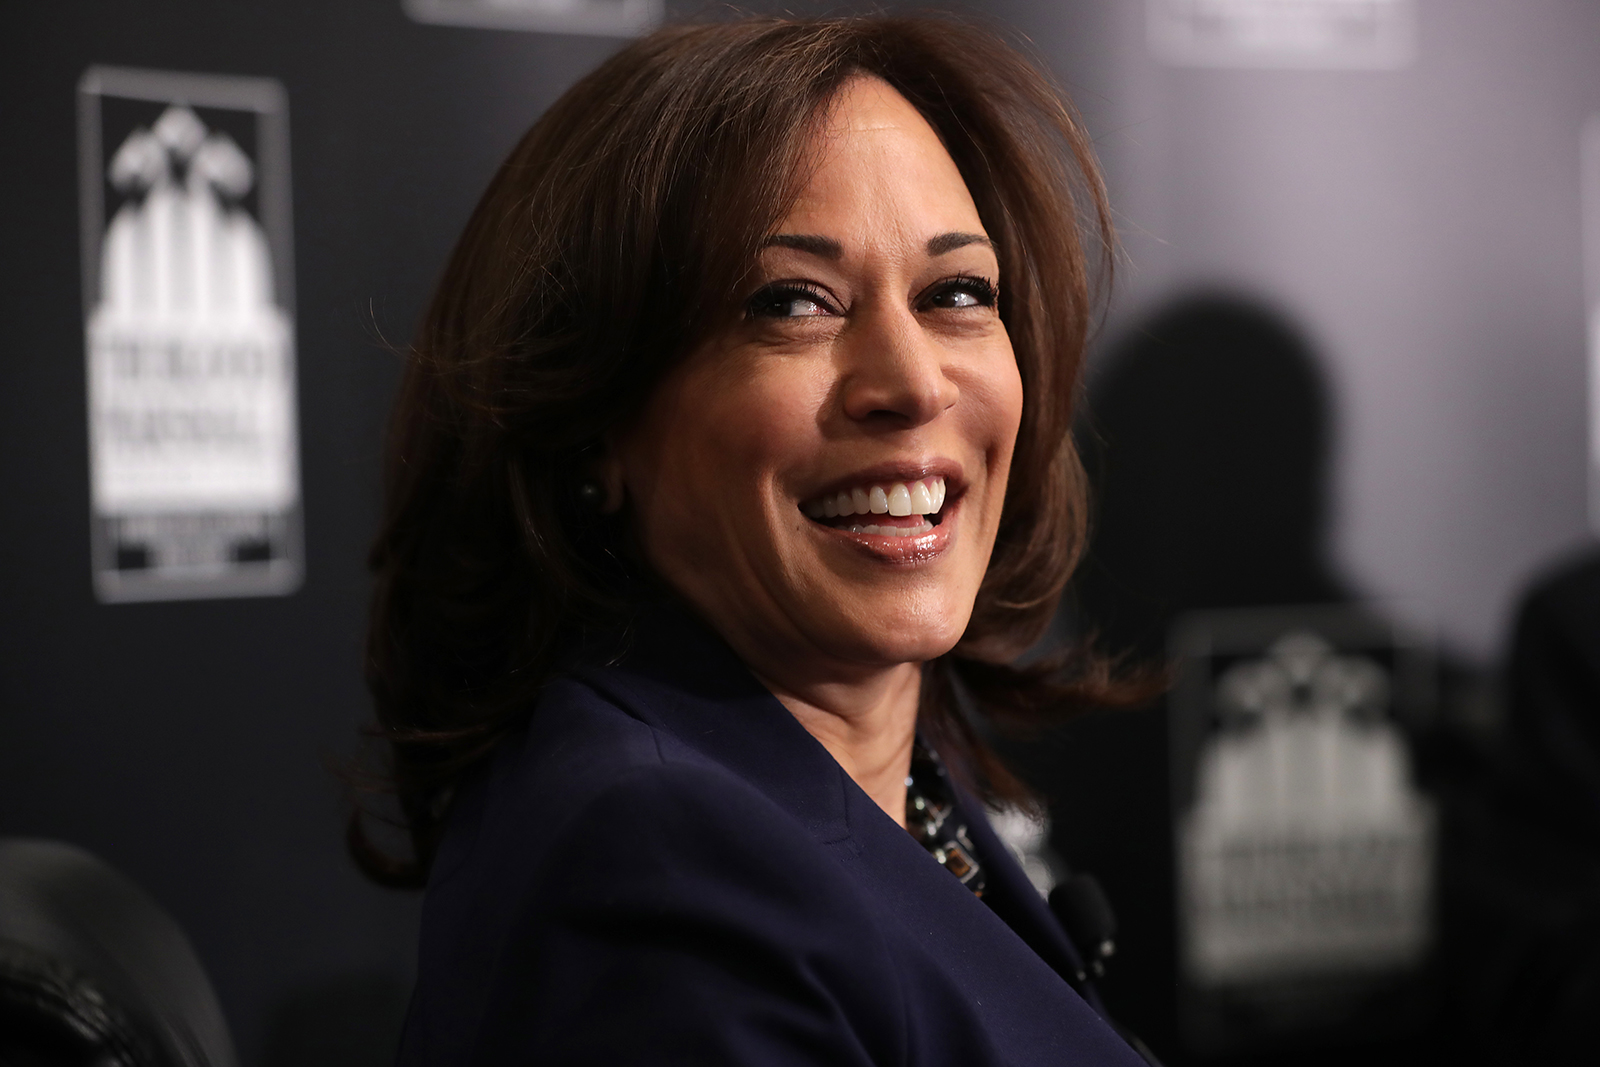 Sen. Kamala Harris participates in a interview and question-and-answer session with leaders from historically black colleges and universities during a Thurgood Marshall College Fund event at the JW Marriott February 07, 2019 in Washington, DC.